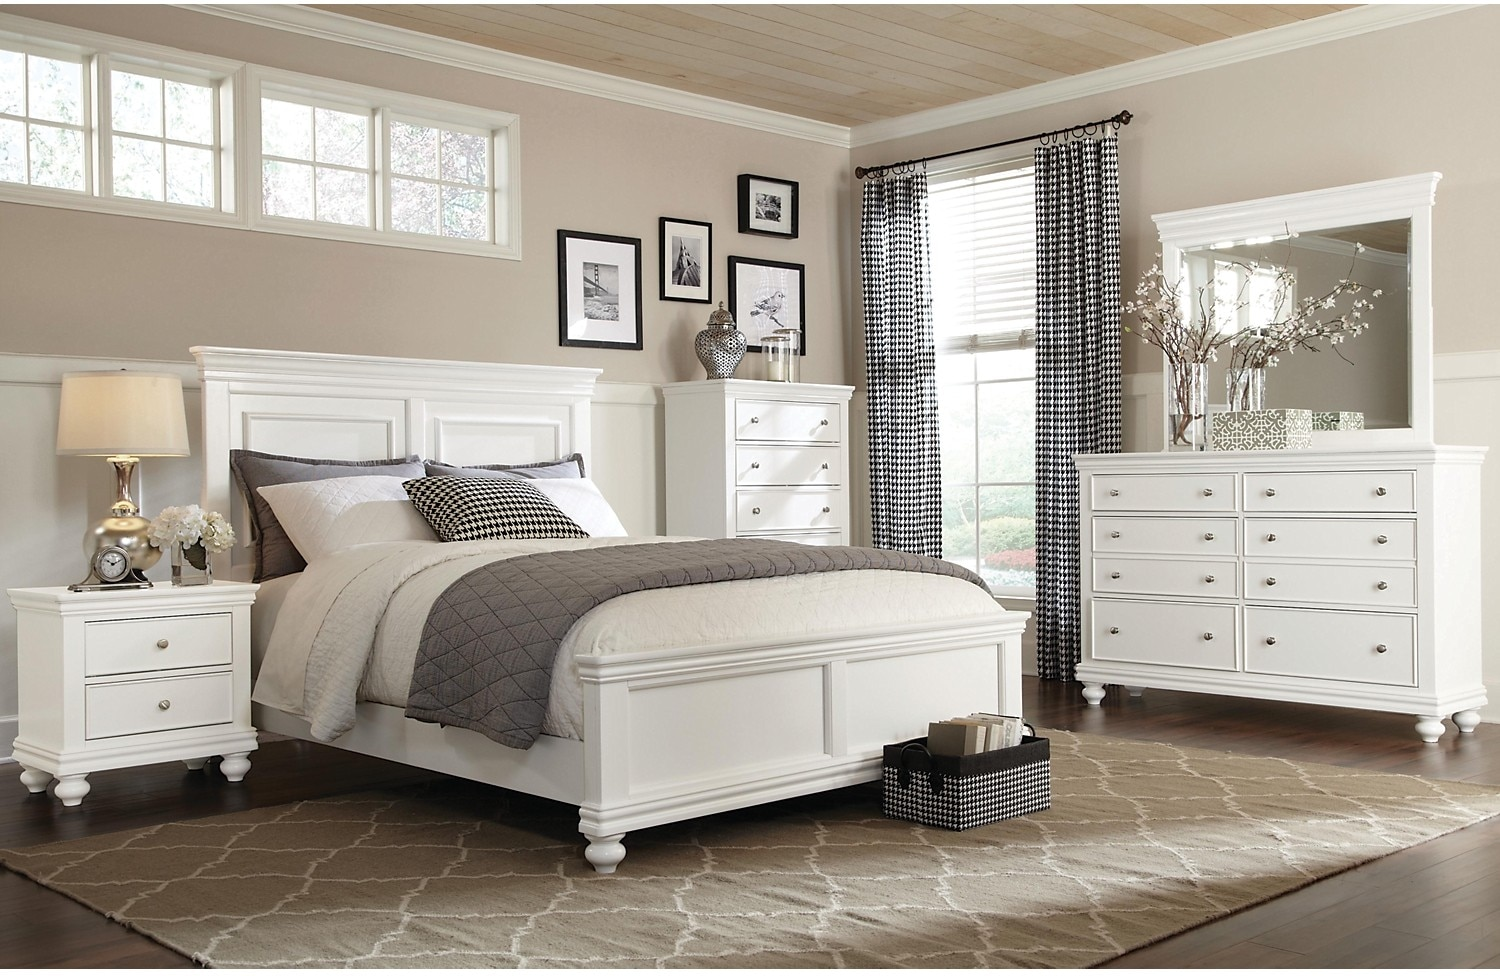 Bedroom Furniture - Bridgeport 6-Piece Queen Bedroom Set – White